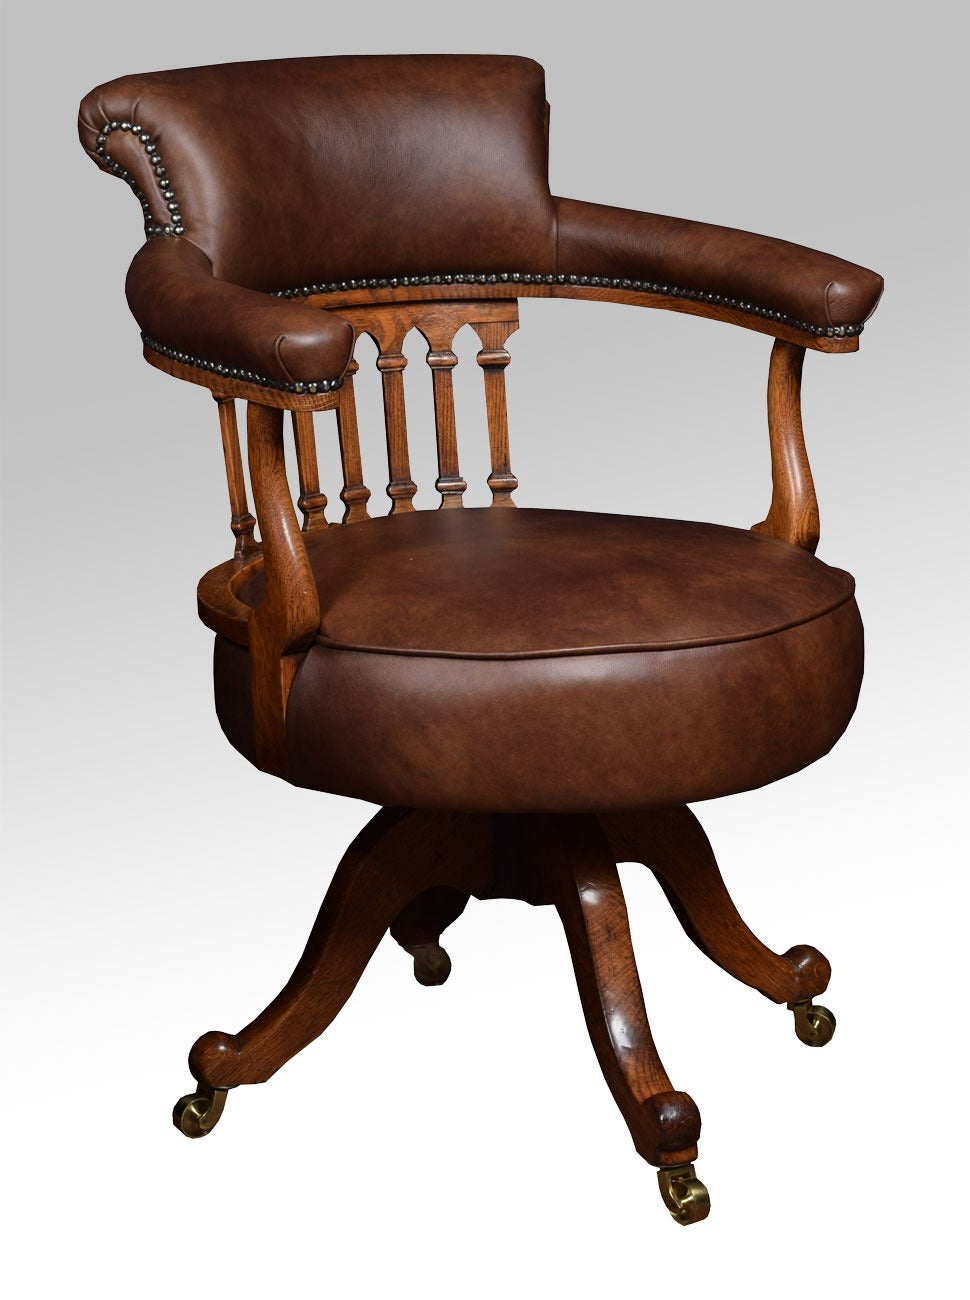 Antique captains chairs - Victorian Mahogany Captains Office Desk Chair 2